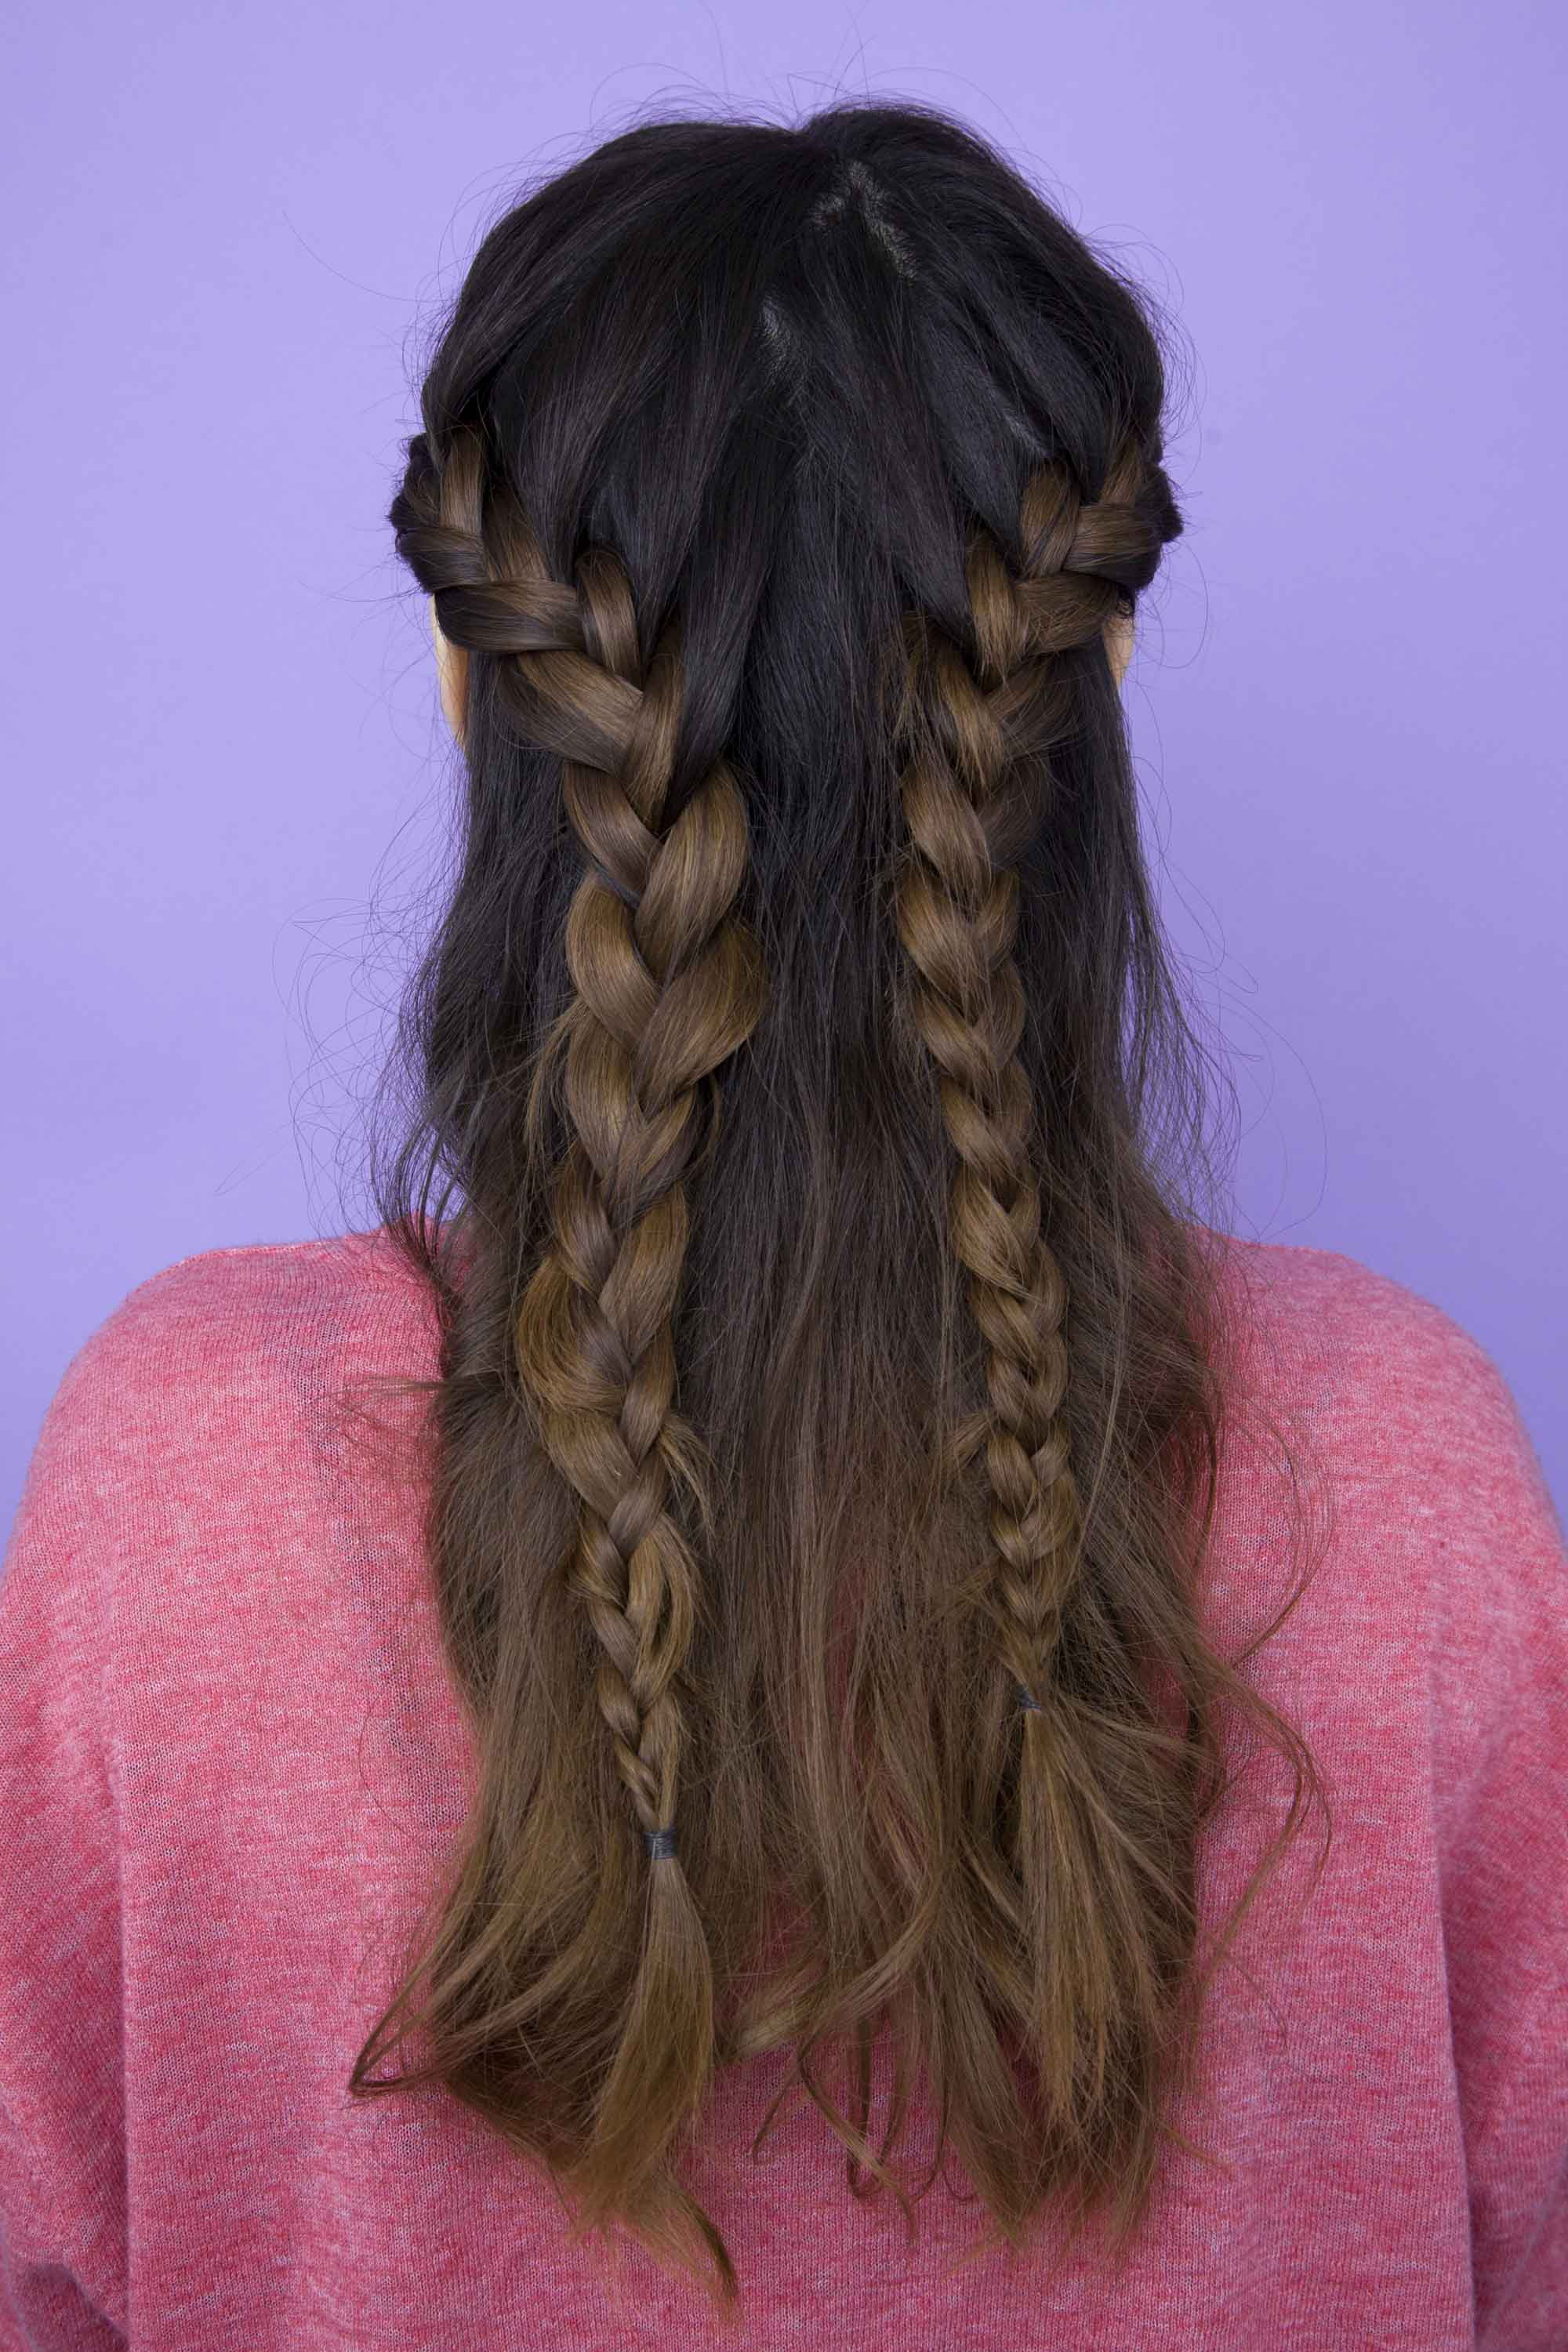 French Braid Hairstyles: 8 Casual Weekend Plaits To Try